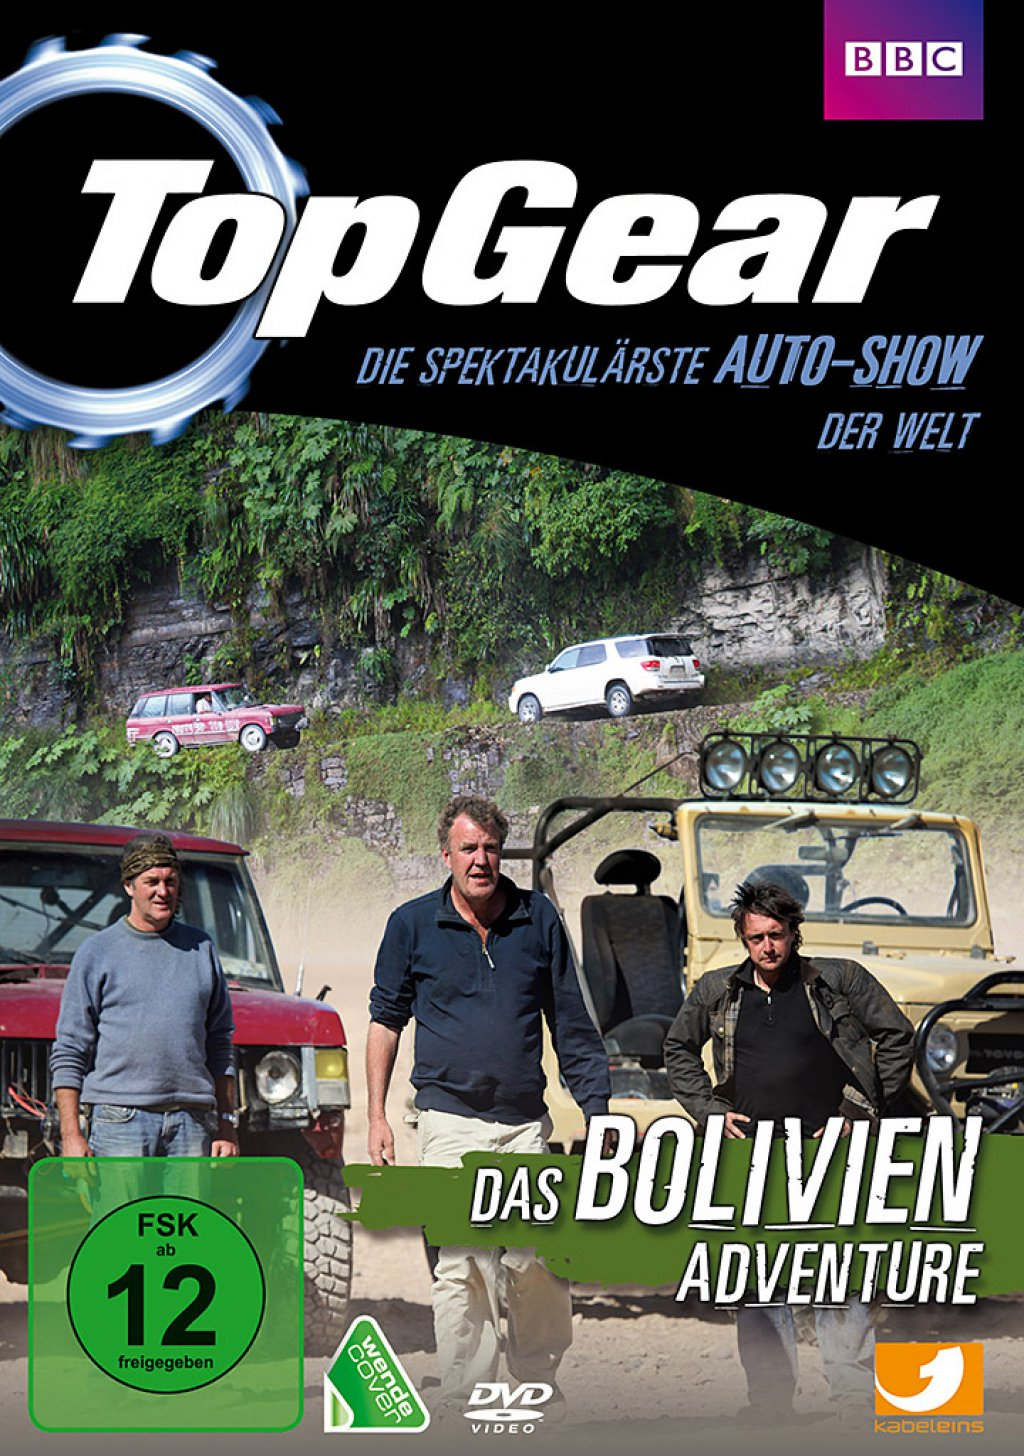 Top Gear - Das Bolivien Adventure (DVD)